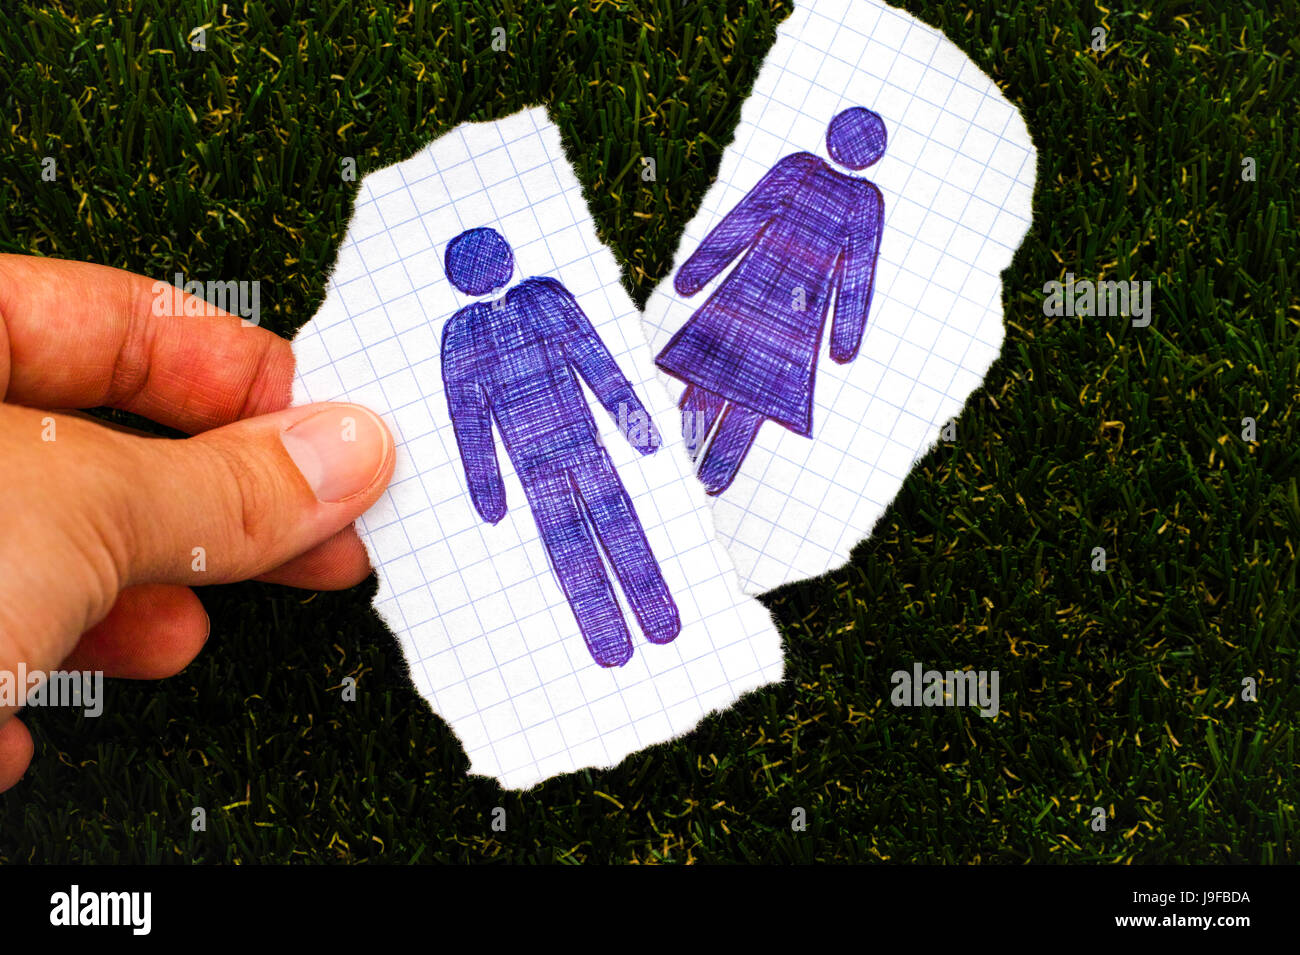 Person fingers holding piece of paper with hand drawn man figure. Other piece of paper with drawn woman figure on - Stock Image